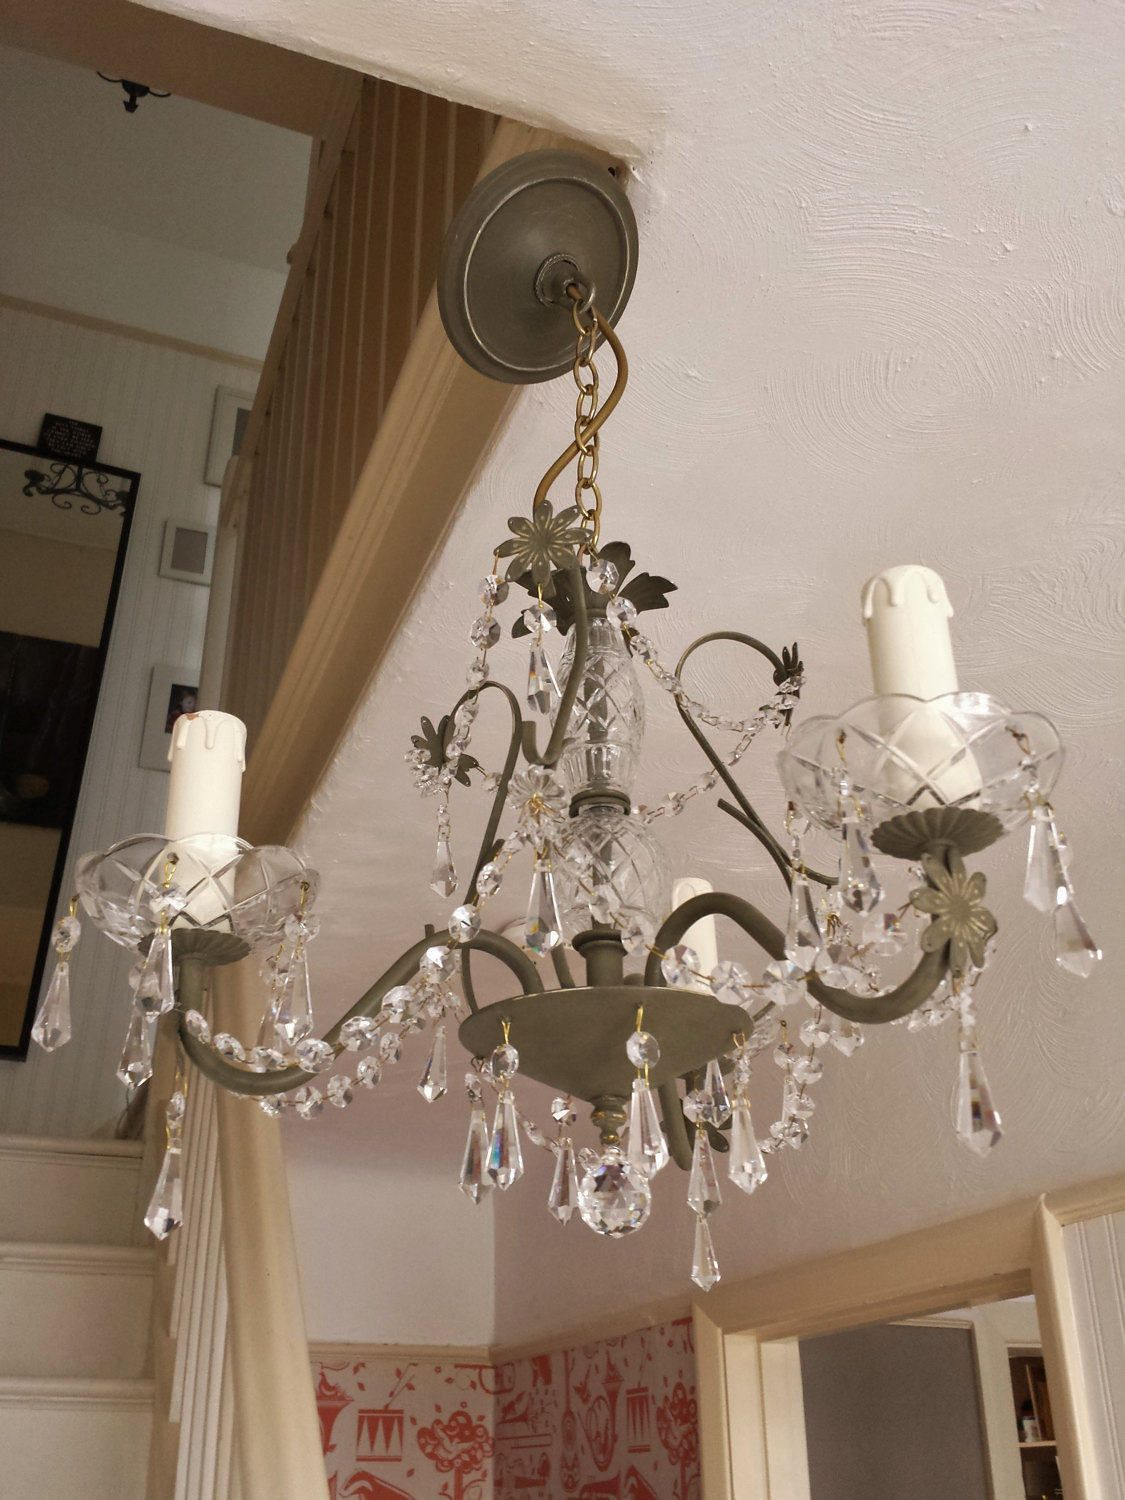 shabby chic lighting fixtures. Crystal Chandelier Lighting, Upcycled Ceiling Light In Olive Annie Sloan Chalk Paint, Modern Pendant Lighting Fixture, Shabby Chic Decor By Fixtures H